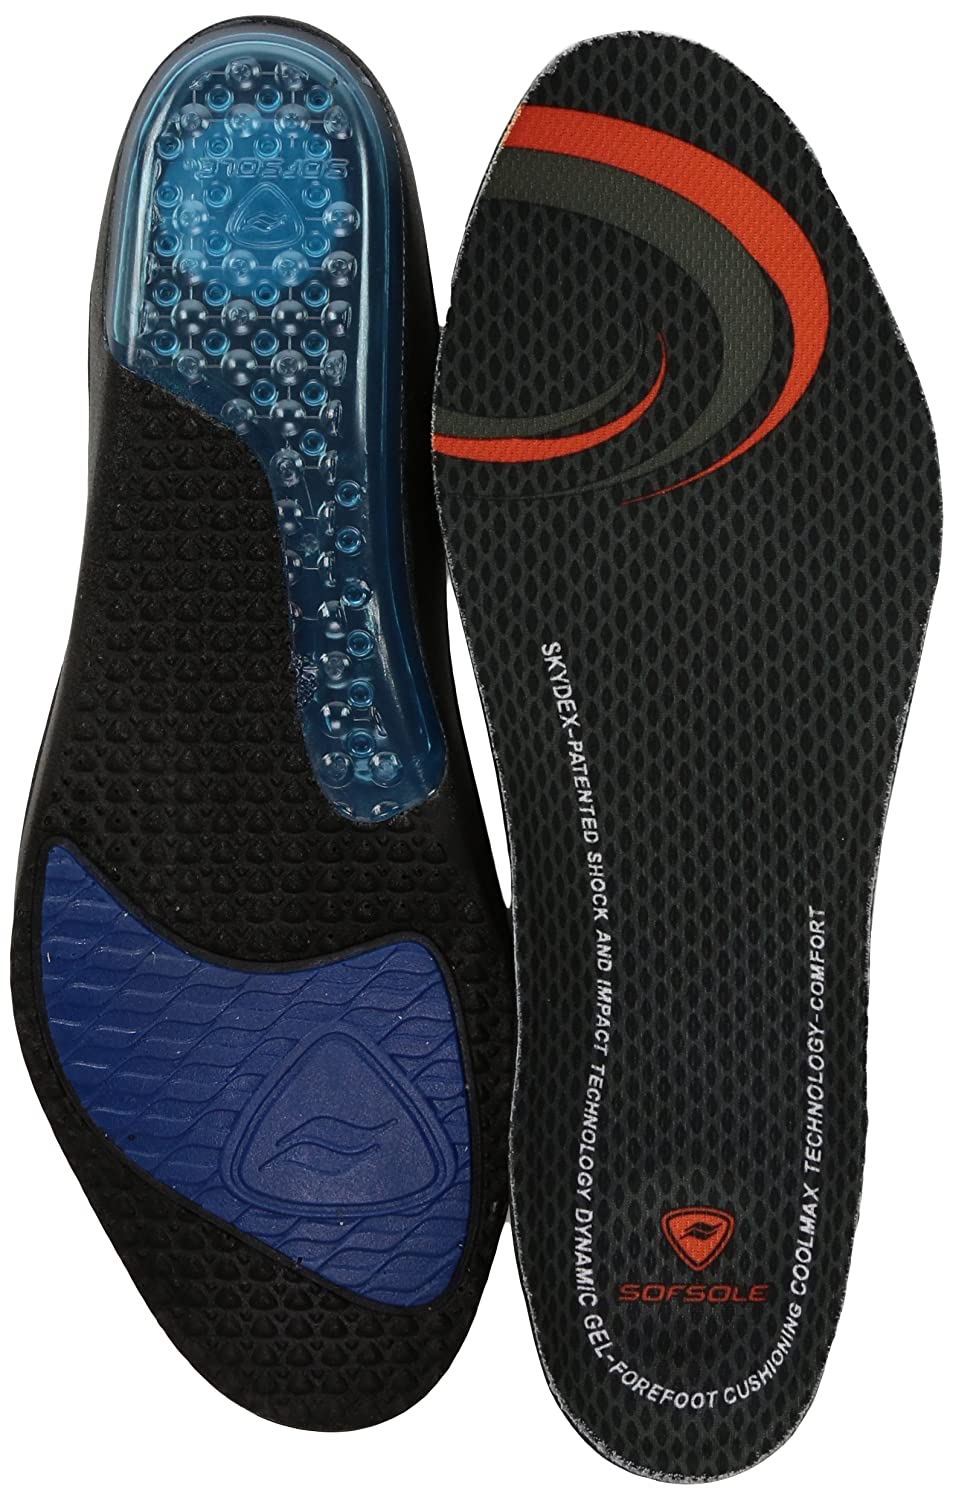 Sof sole airr performance insoles